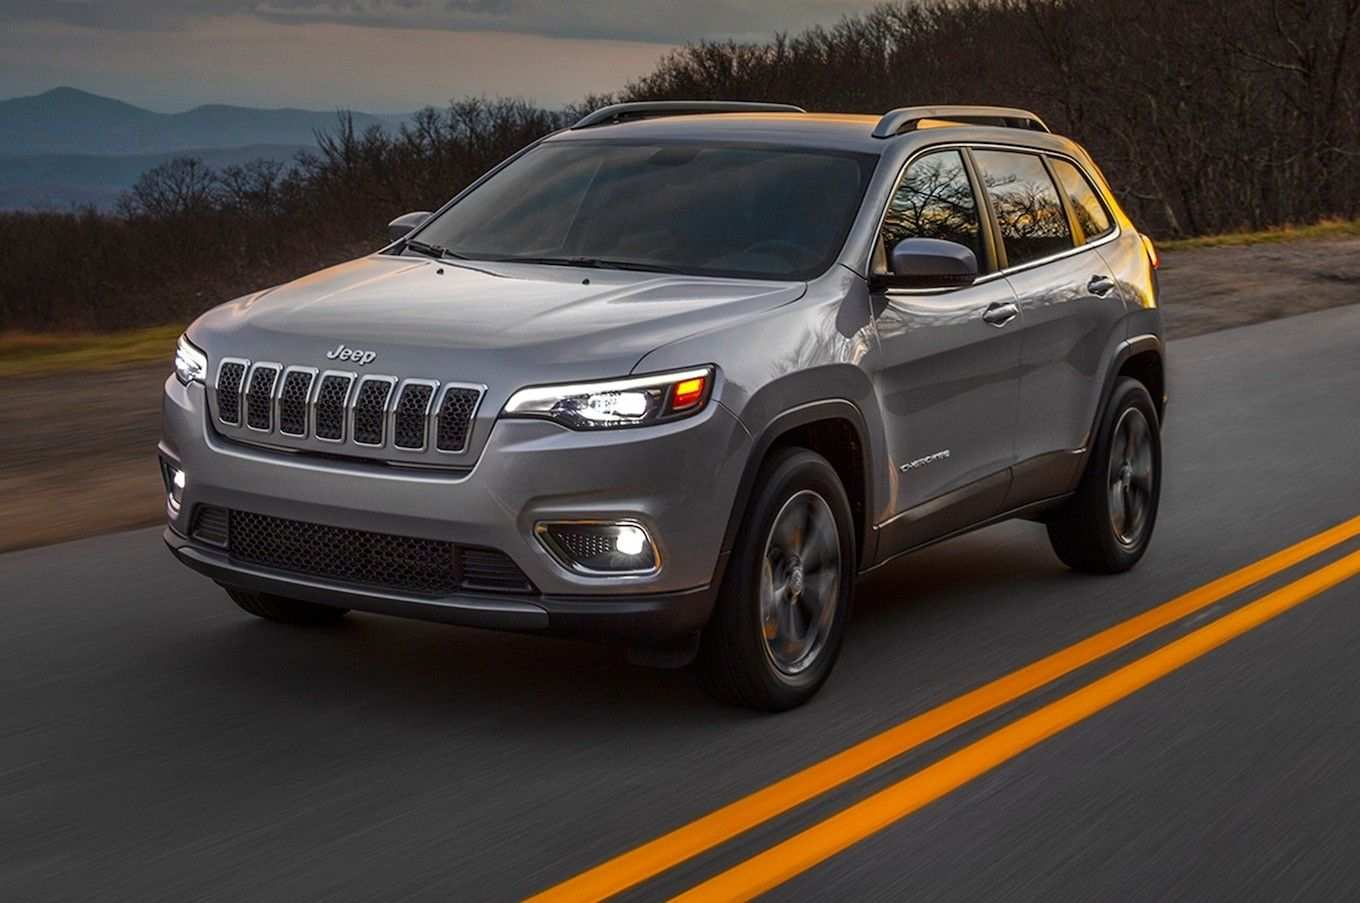 46 Gallery of The 2019 Jeep Cherokee Ride Quality Release Date Price And Review Spesification with The 2019 Jeep Cherokee Ride Quality Release Date Price And Review